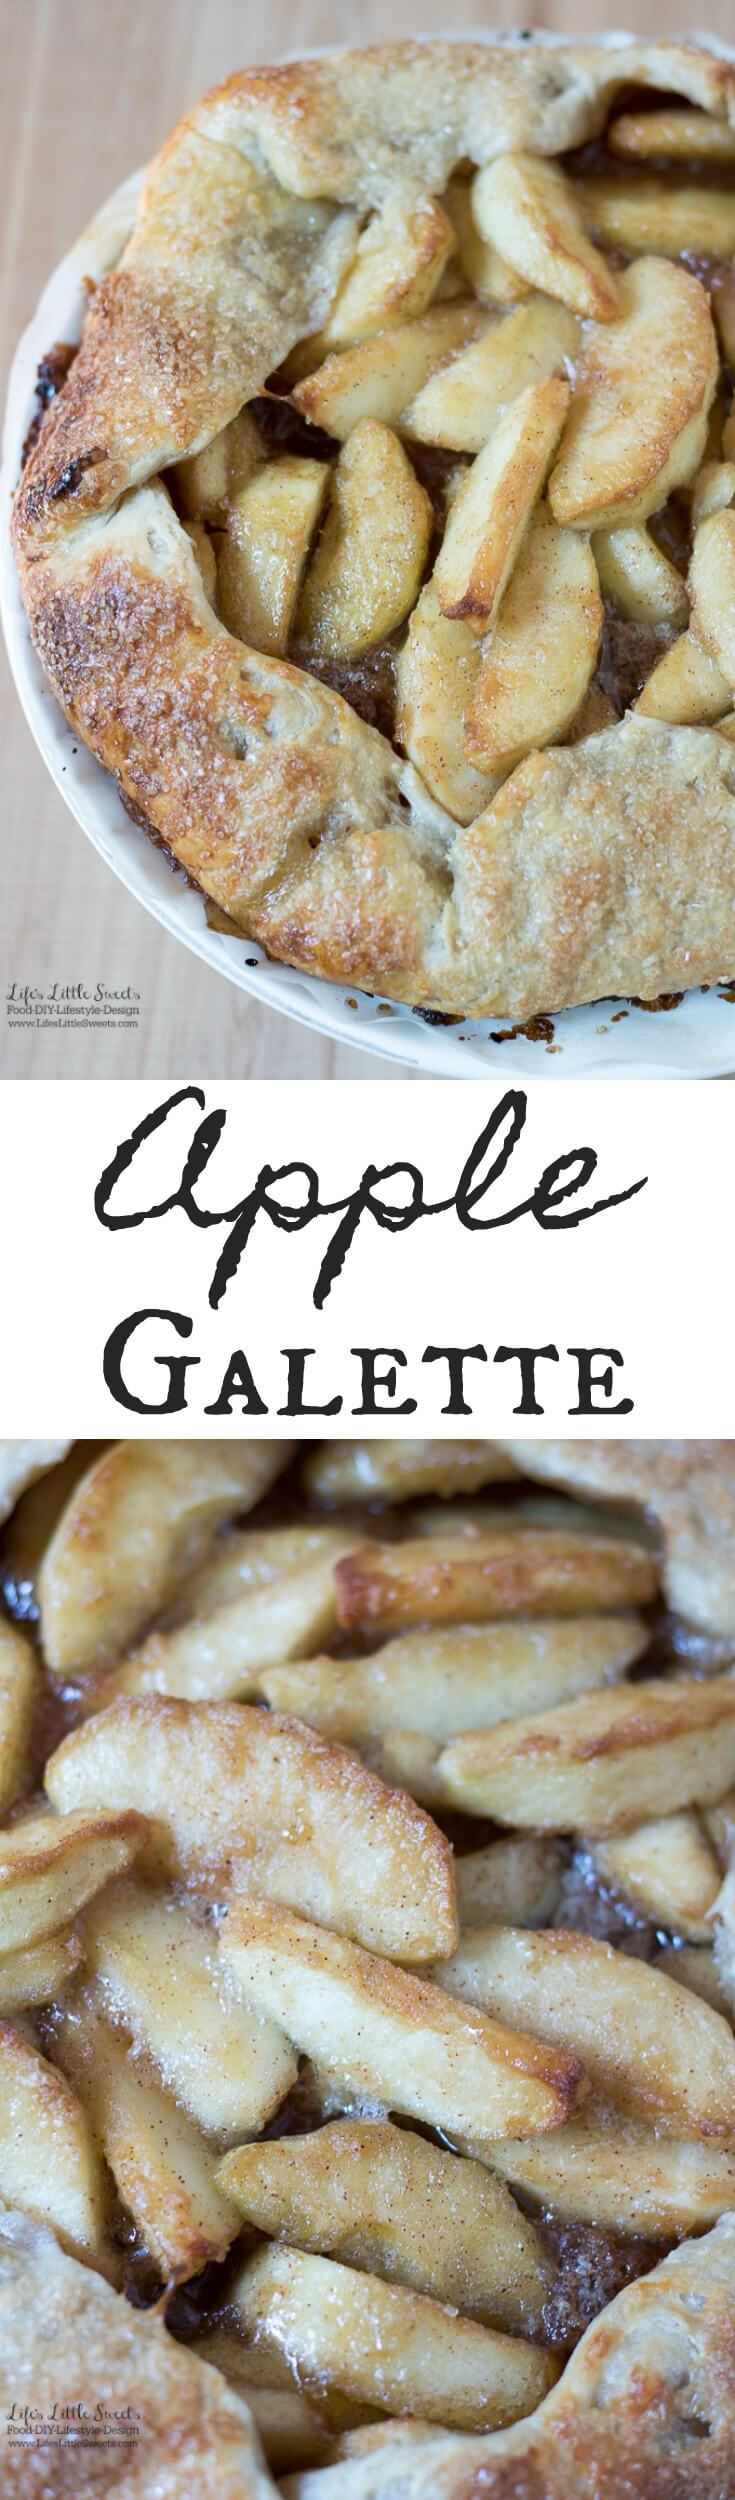 This Apple Galette recipe is sweet, crisp and perfect for Fall. Enjoy a slice with a scoop of vanilla ice cream! (6-8 servings) www.lifeslittlesweets.com